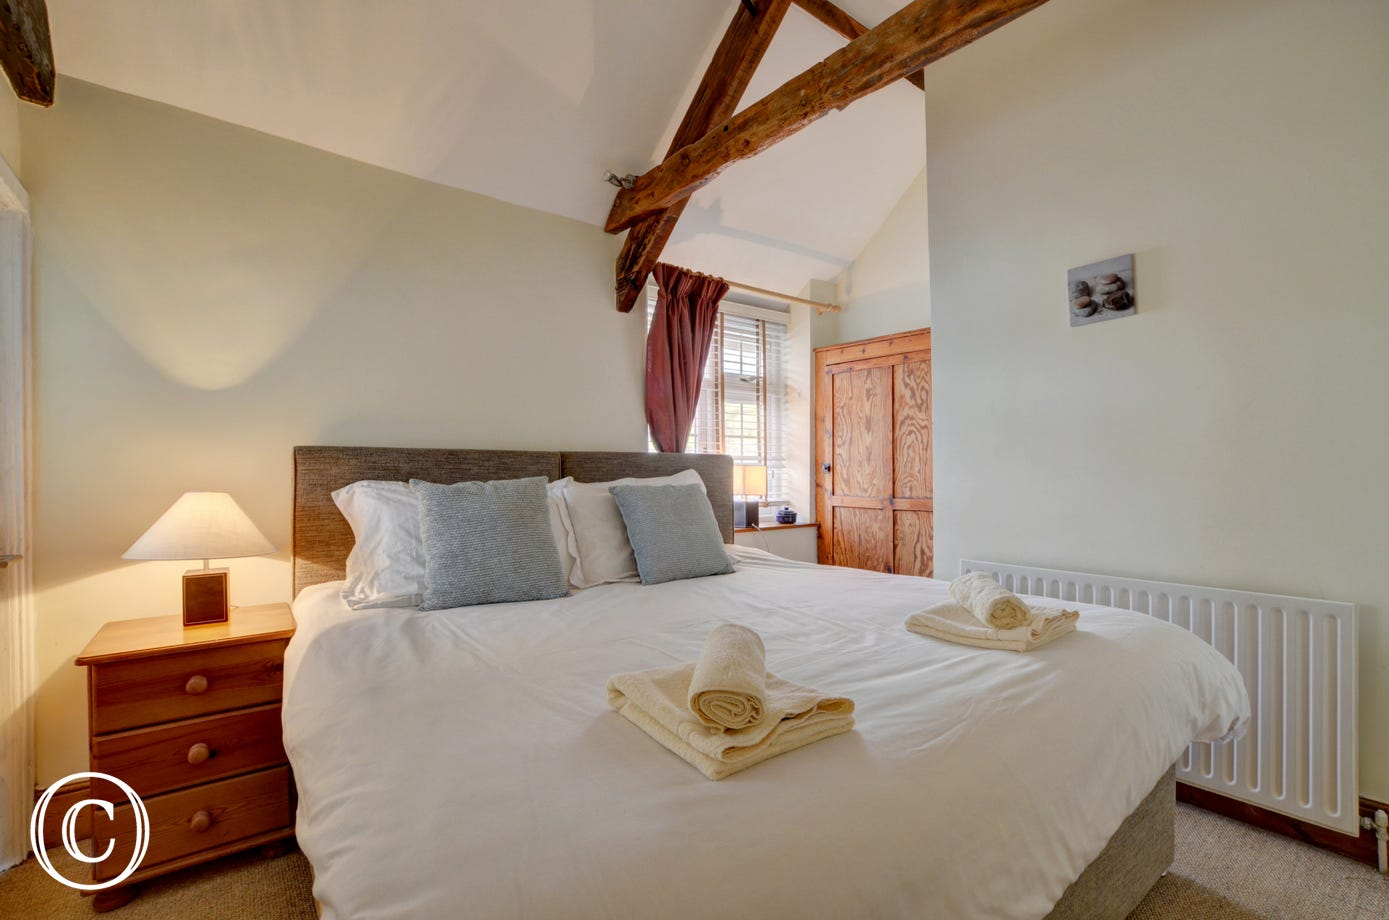 The master bedroom with super king bed and original beams, exposed stonework and pine furniture